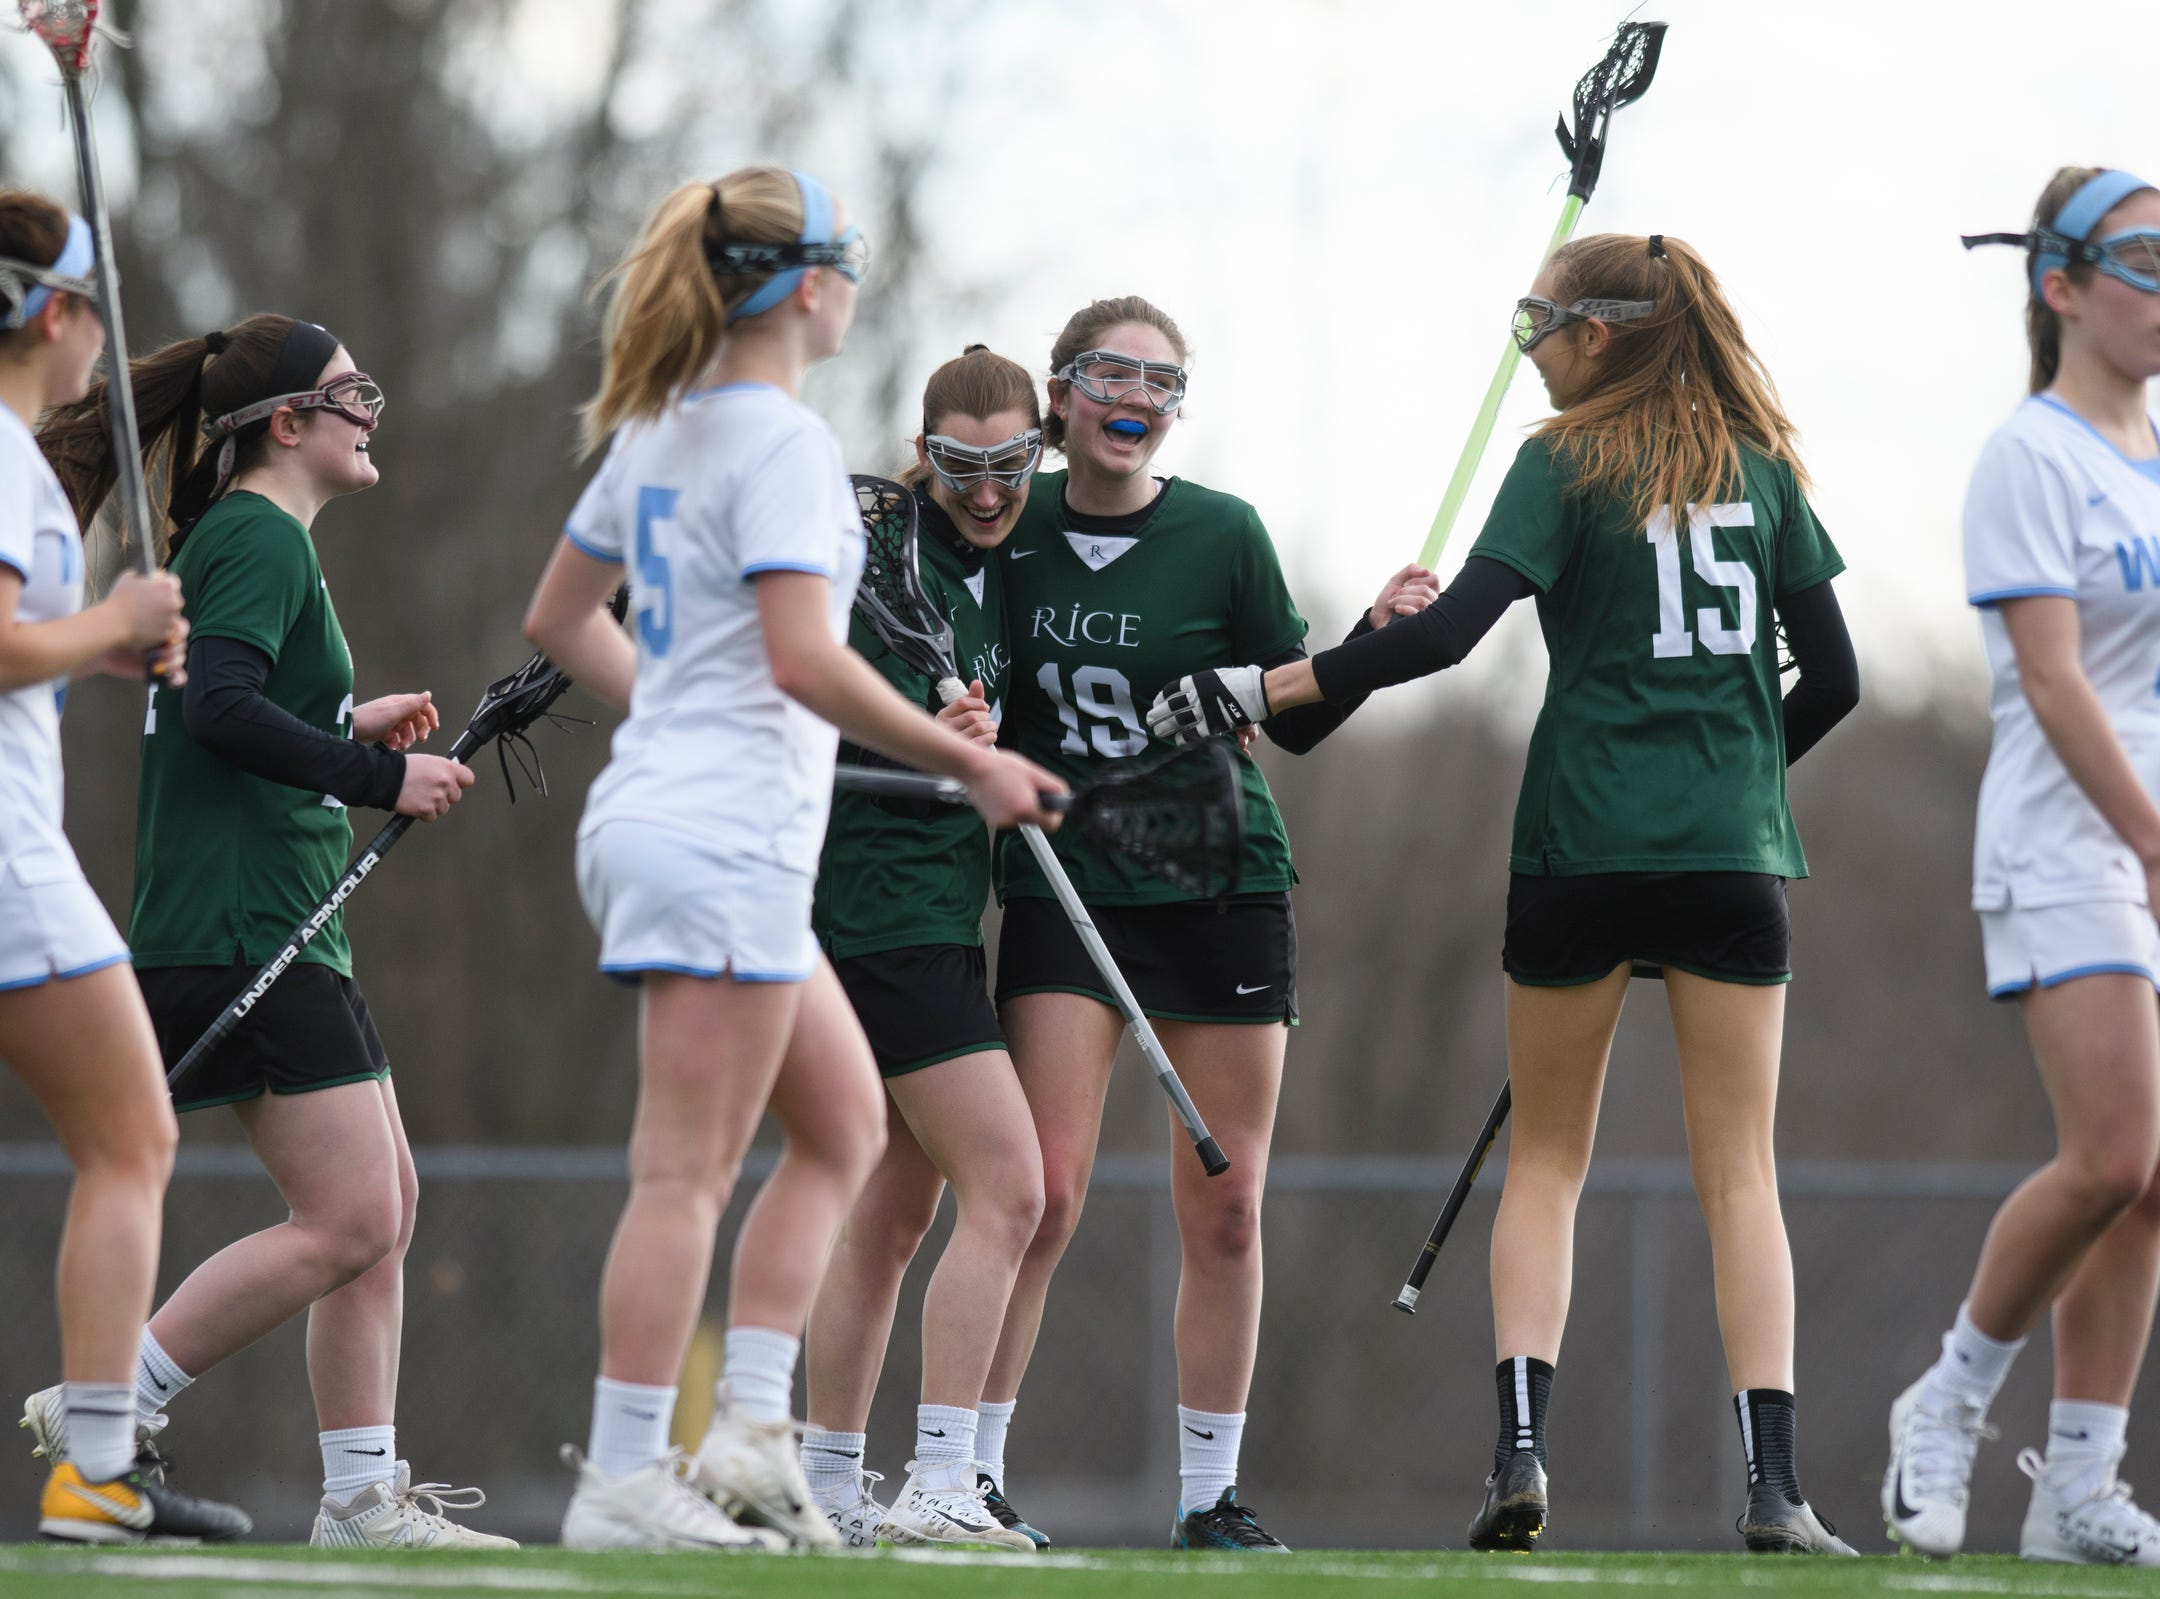 Rice celebrates a goal during the girls lacrosse game between the Rice Green Knights and the South Burlington Wolves at South Burlington High School on Tuesday afternoon April 16, 2019 in South Burlington, Vermont.